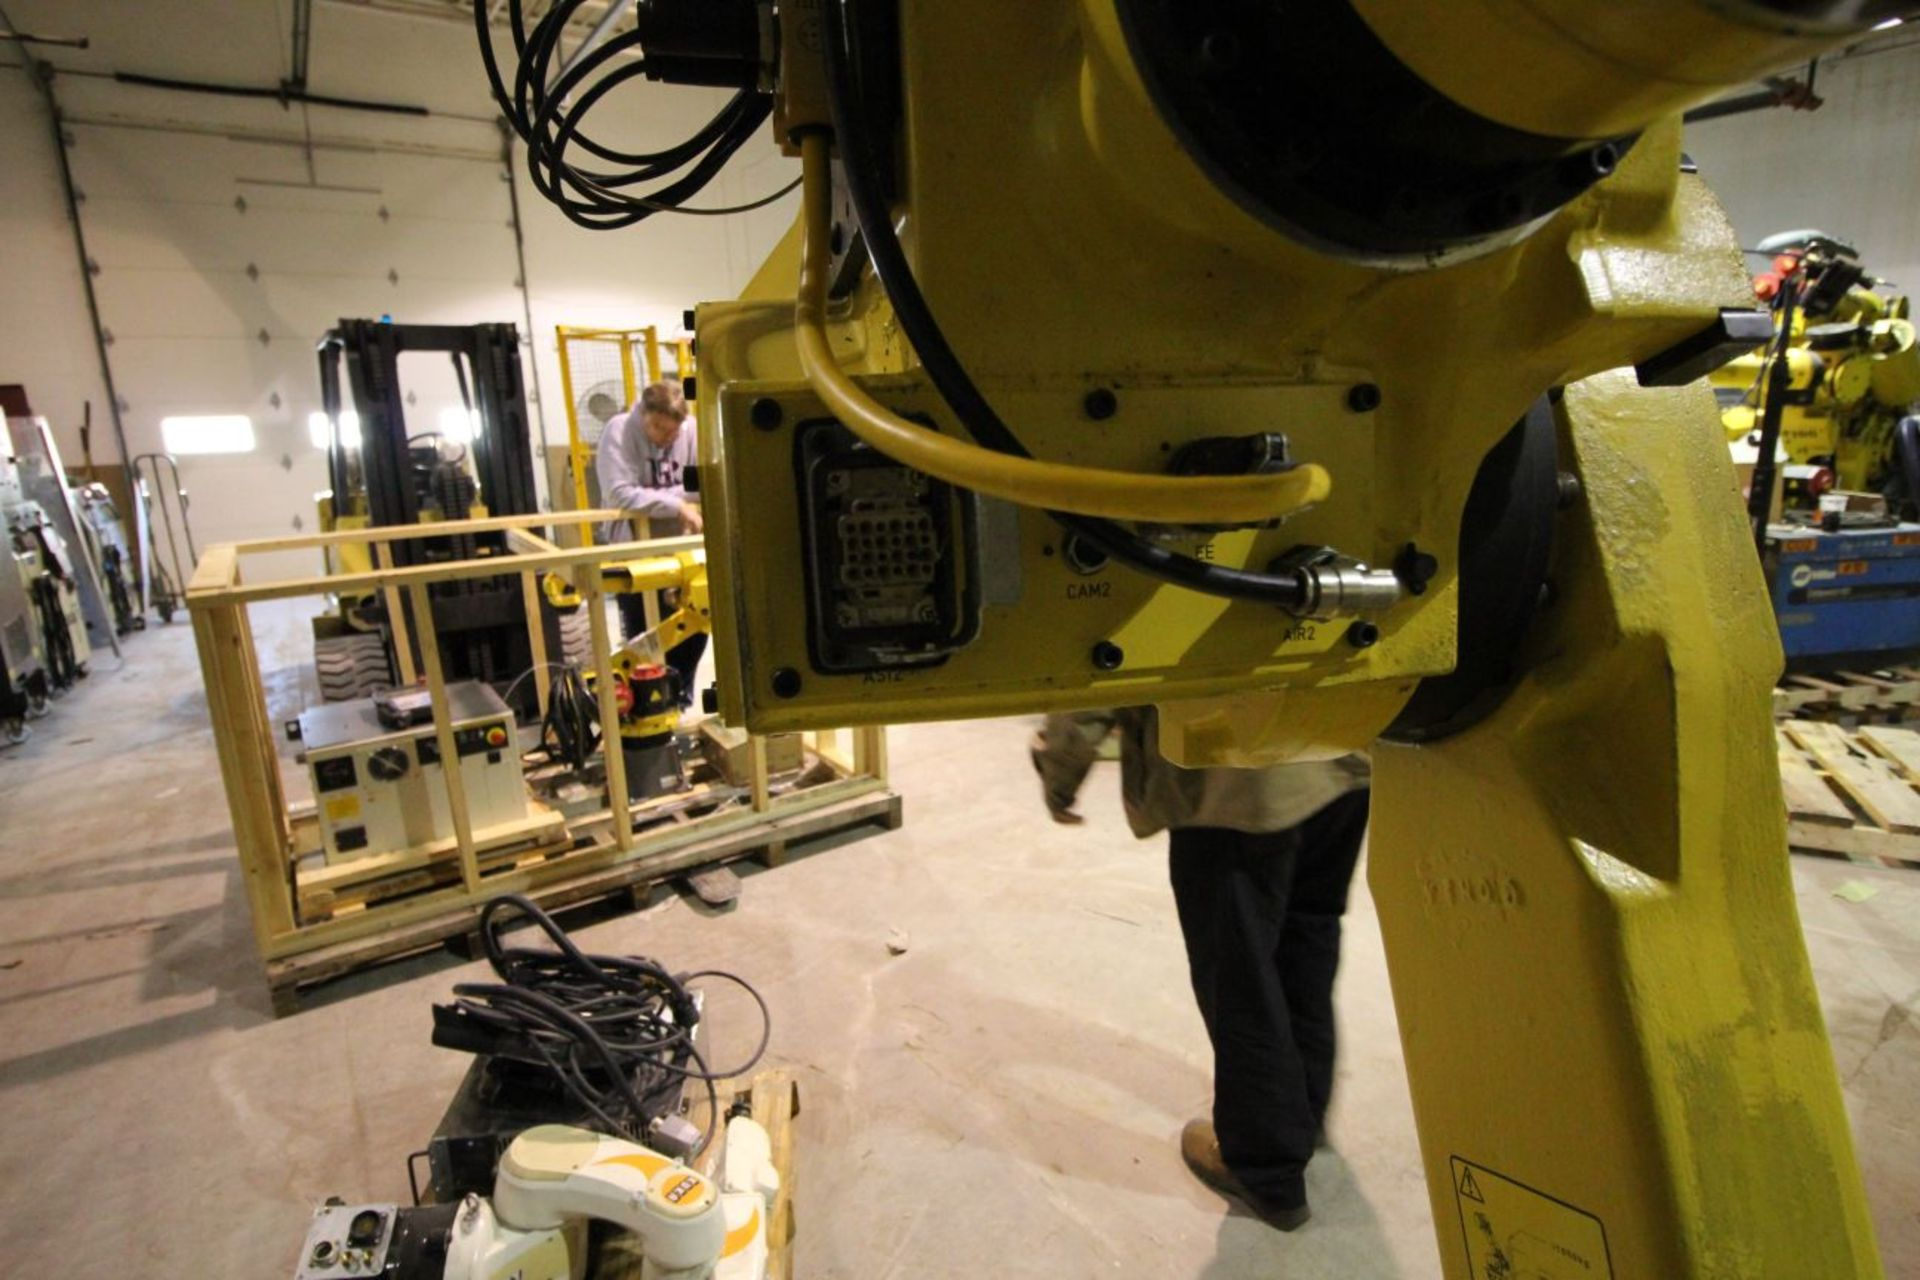 FANUC M710iC/50 6 AXIS CNC ROBOT WITH R30iA CONTROLLER AND VISION CONNECTIONS, SN 109513, YEAR 2011 - Image 4 of 8